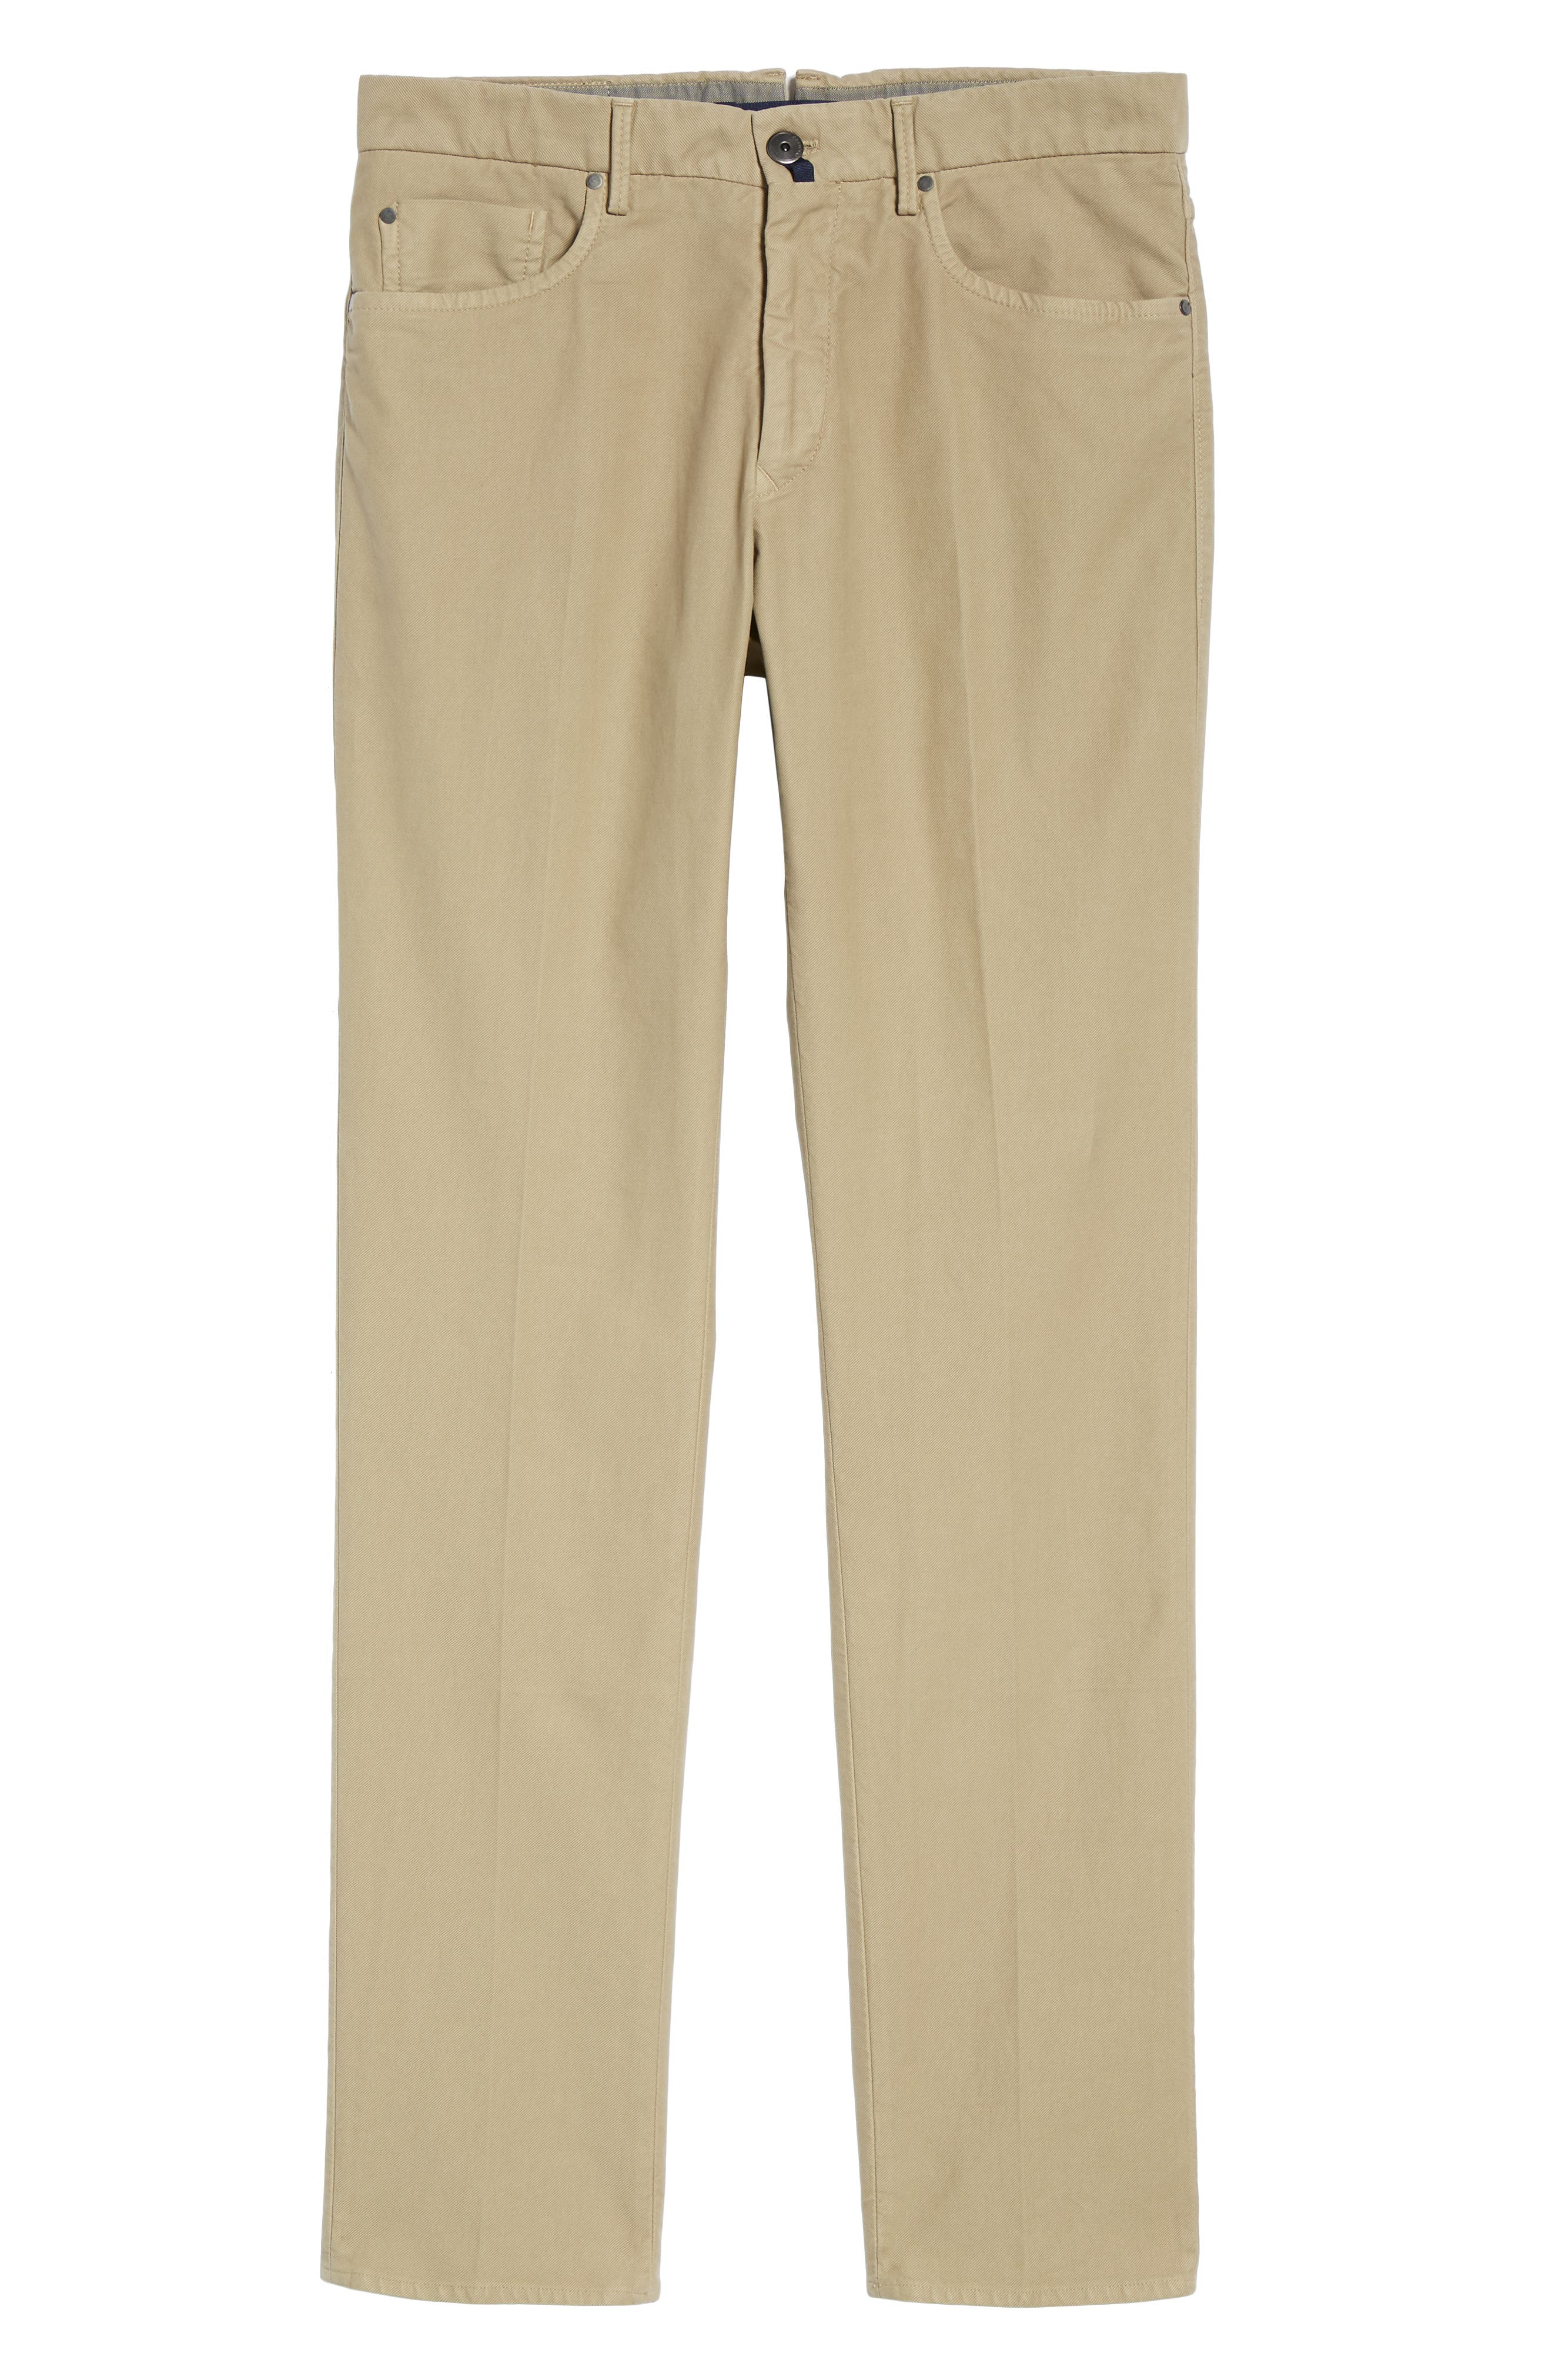 Five-Pocket Solid Stretch Cotton Trousers,                             Alternate thumbnail 6, color,                             STONE